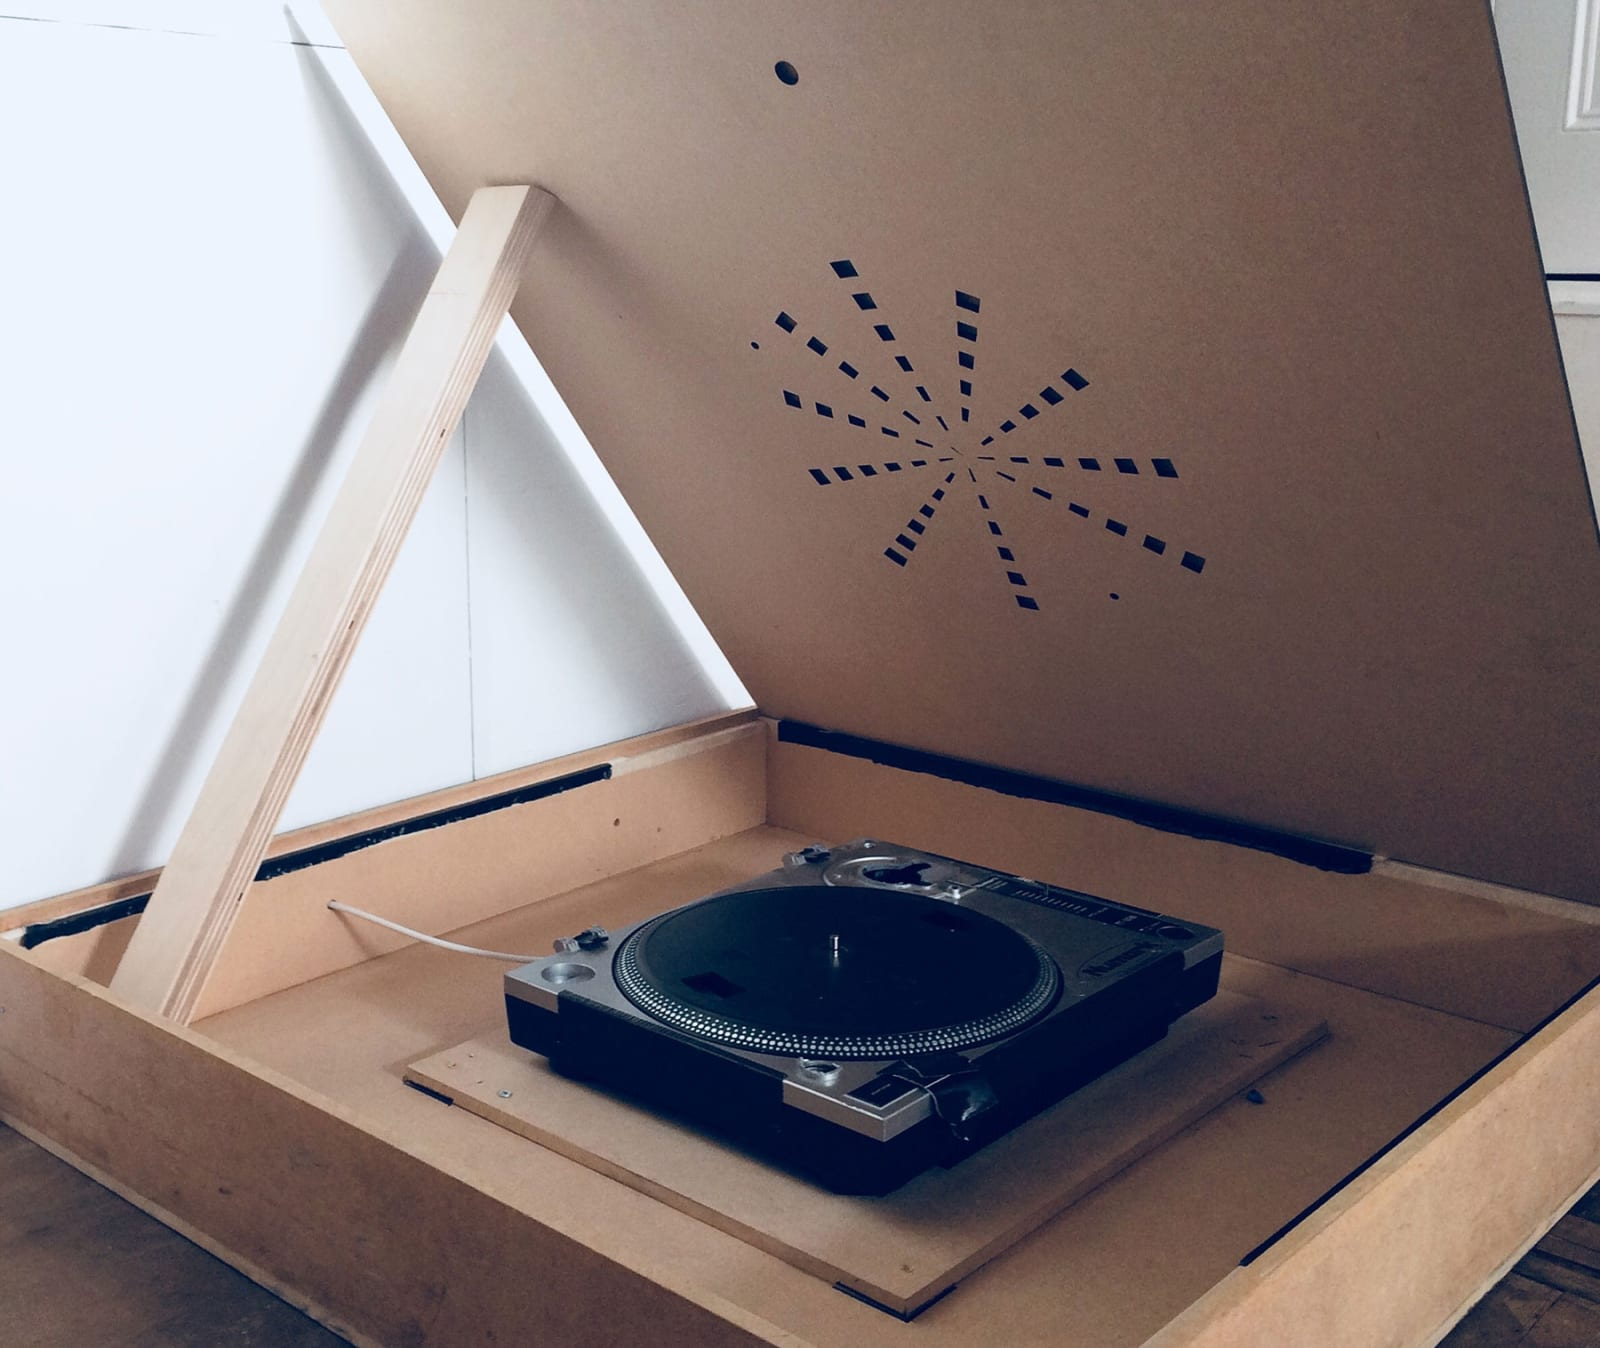 Appartus for Light Rings made with record player